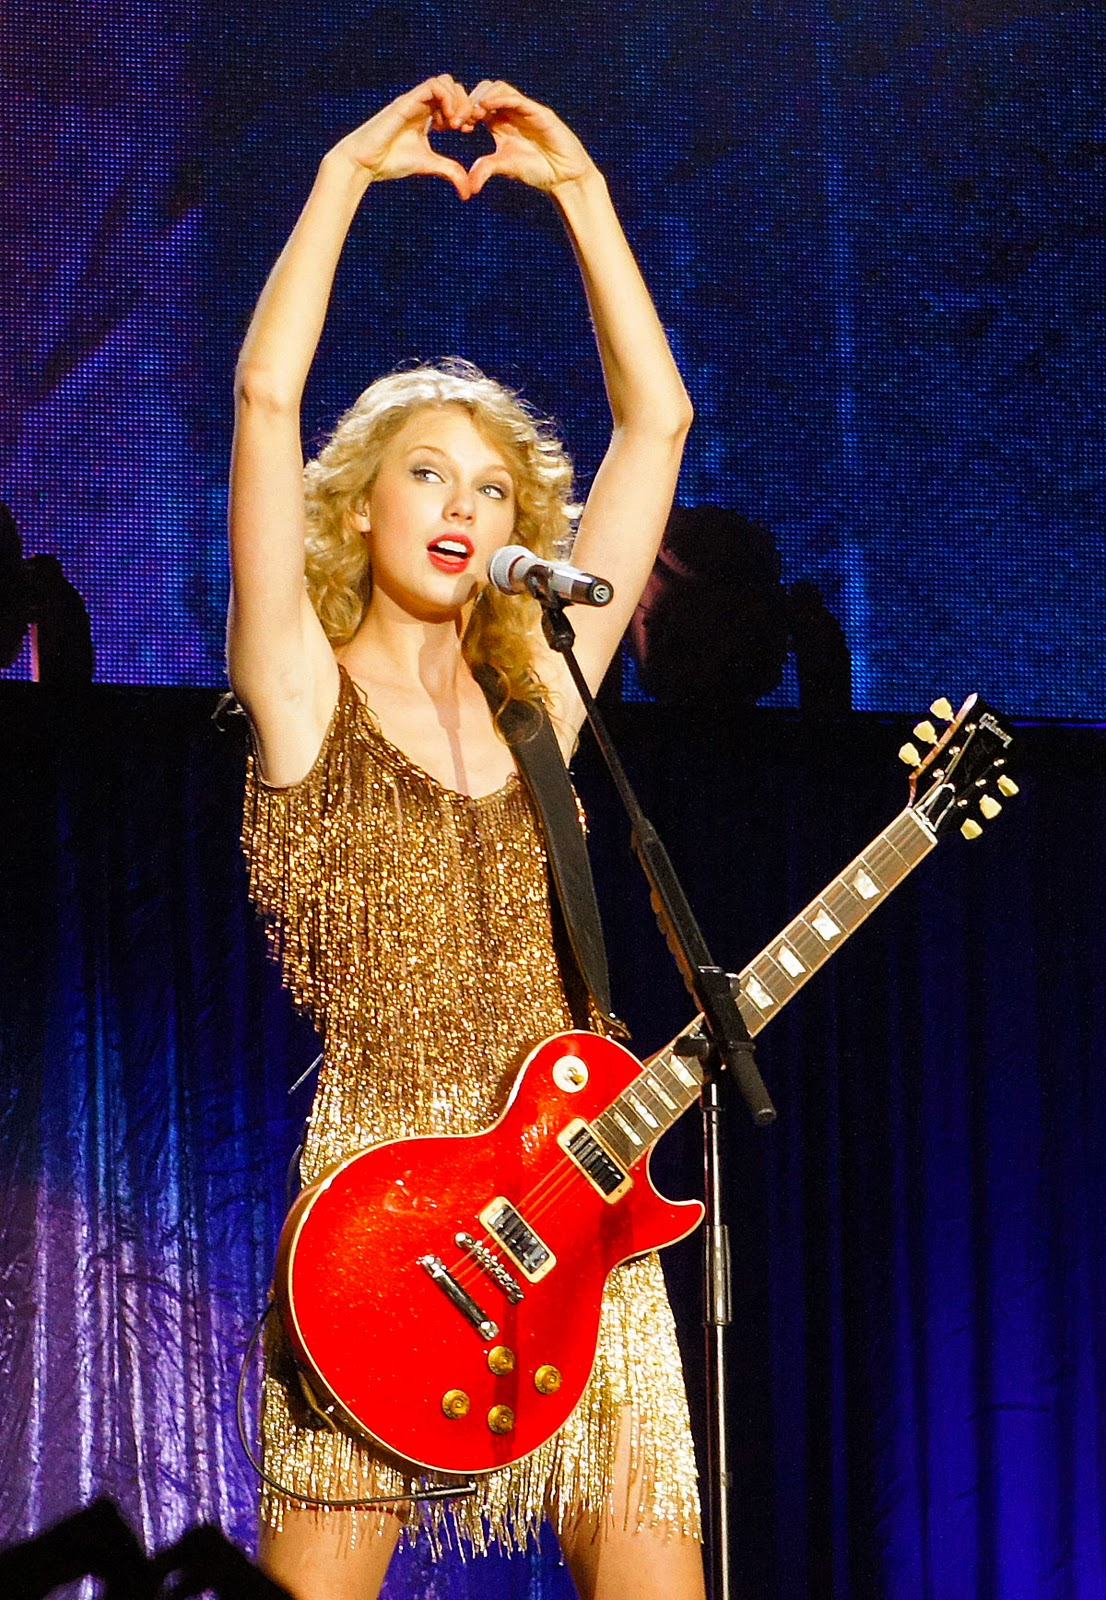 http://2.bp.blogspot.com/-hZ-ABHsGye8/TsyV_P5iDvI/AAAAAAAANvA/DDjRgzSC308/s1600/Taylor-Swift-Speak-Now-World-Tour-Heart.jpg